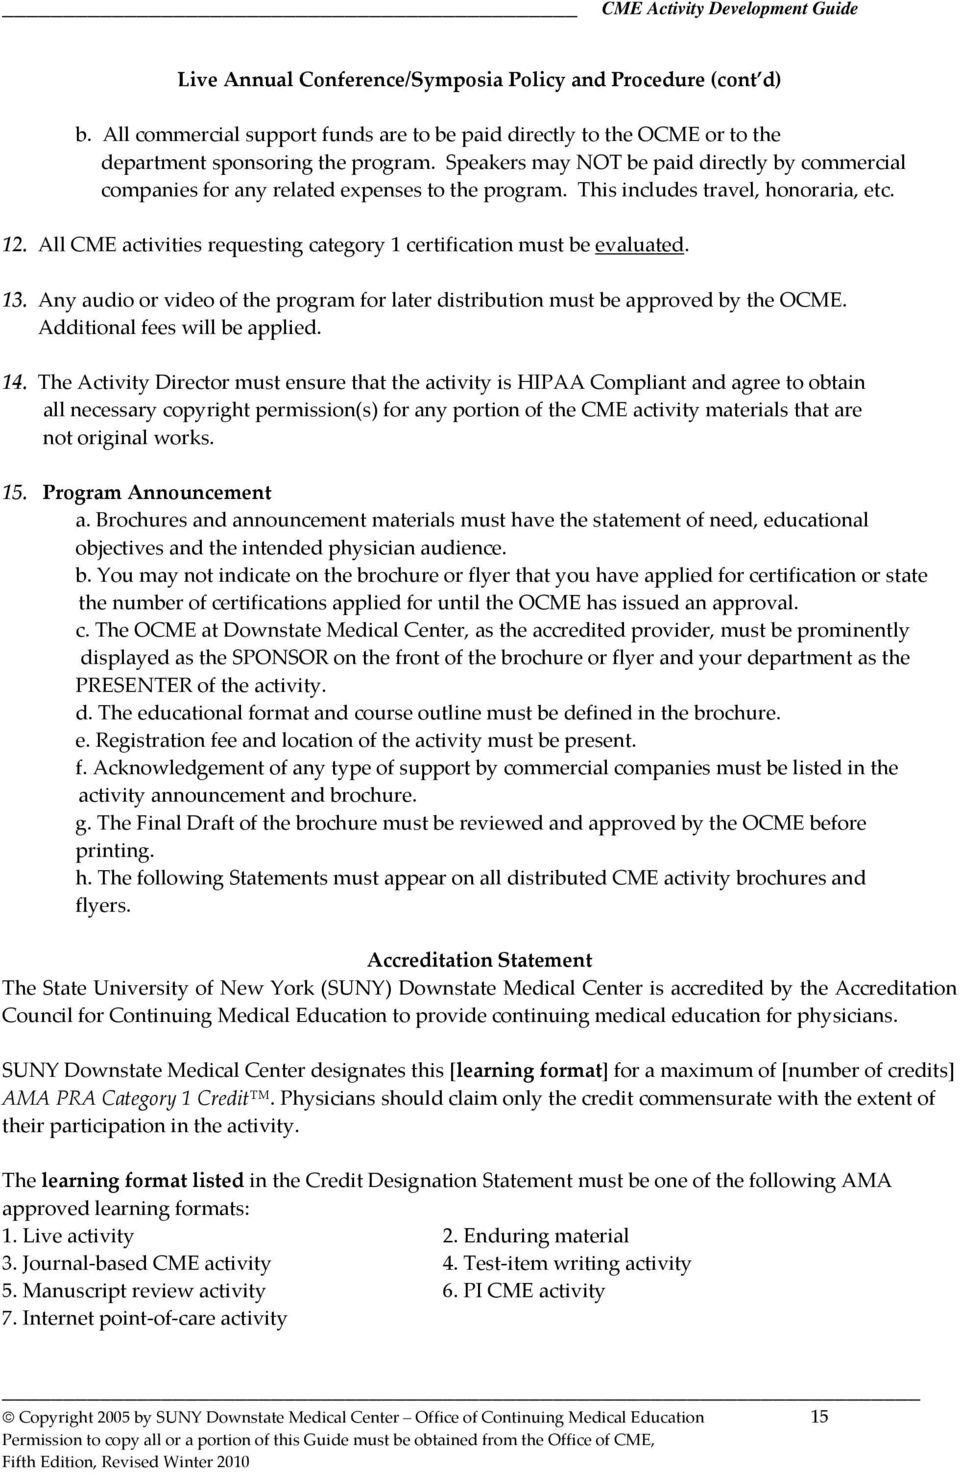 Cme Activity Development Guide Table Of Contents Pdf